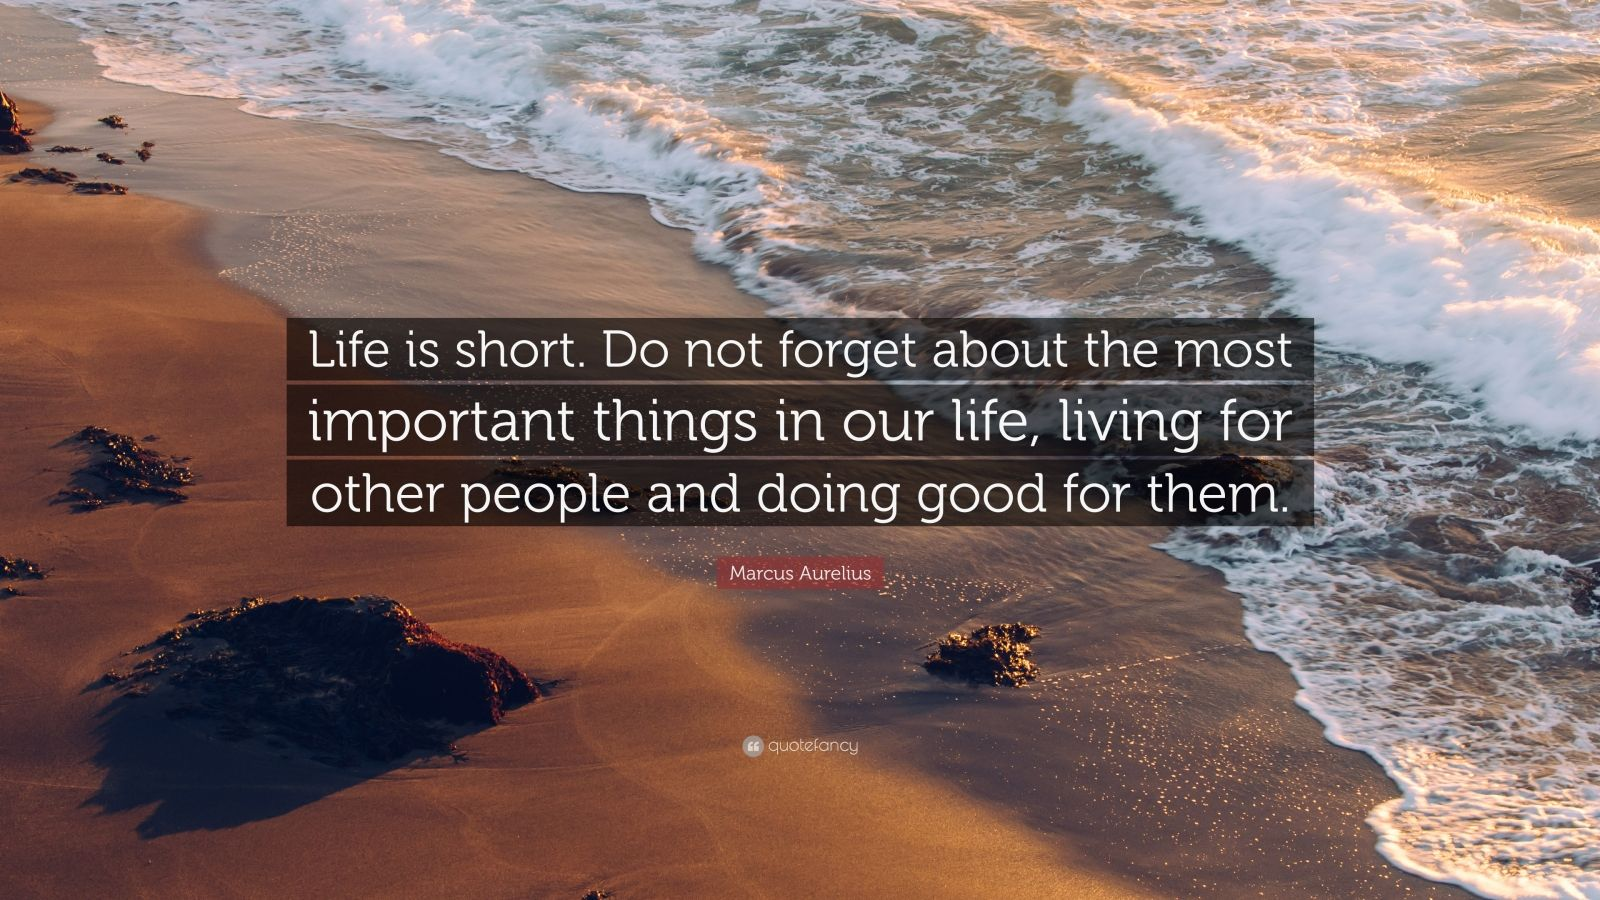 """Marcus Aurelius Quote: """"Life is short. Do not forget about the most important things in our life, living for other people and doing good for them."""""""